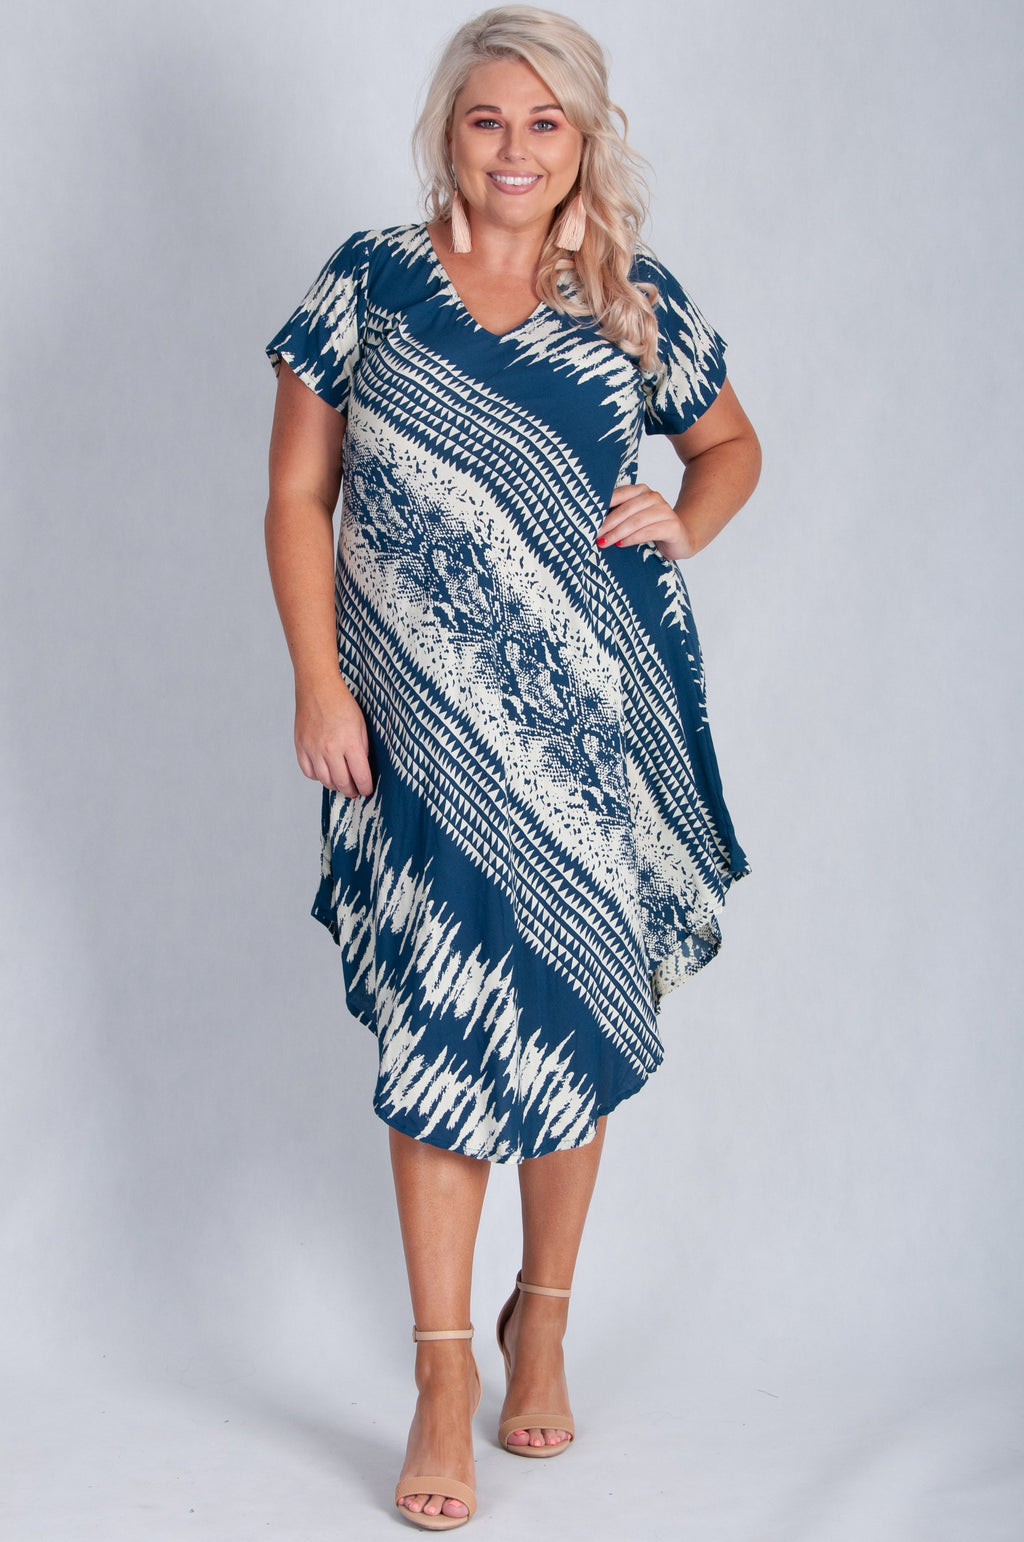 VBLD083 - GREAT HARBOUR DRESS - NAVY/CREAM